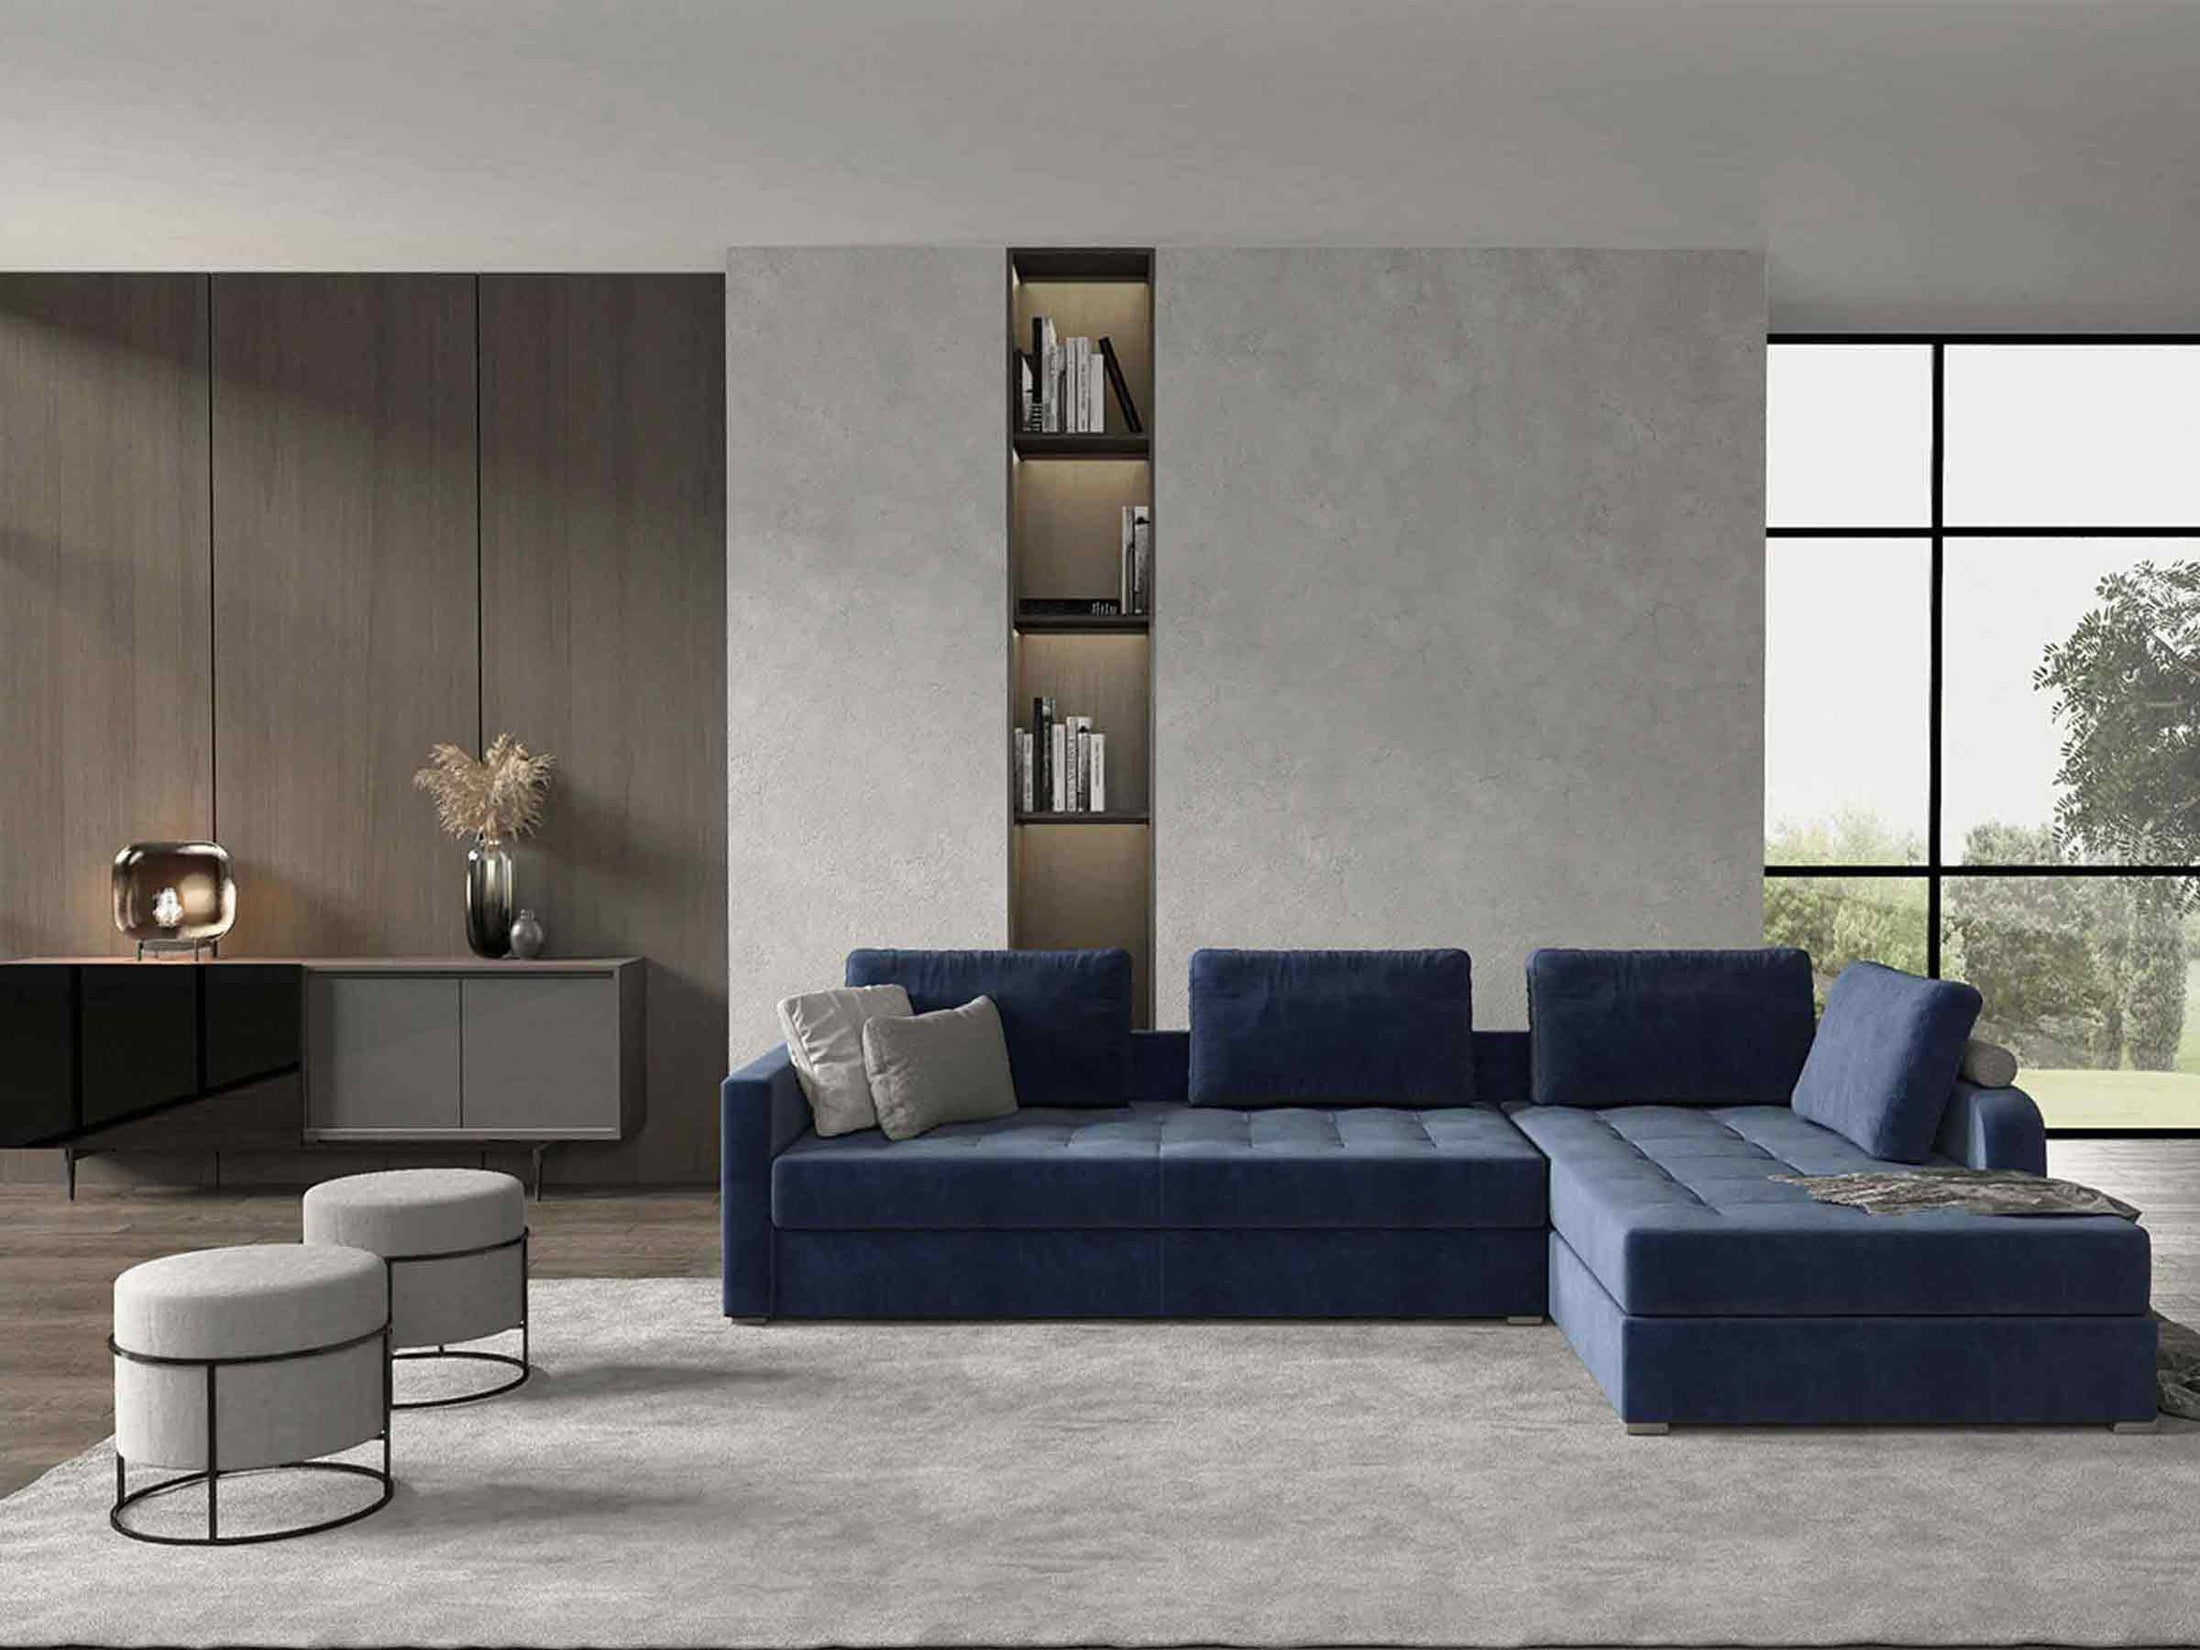 Parents Visiting Your NYC Apartment, Don't Worry Lazzoni Designs Will Help You